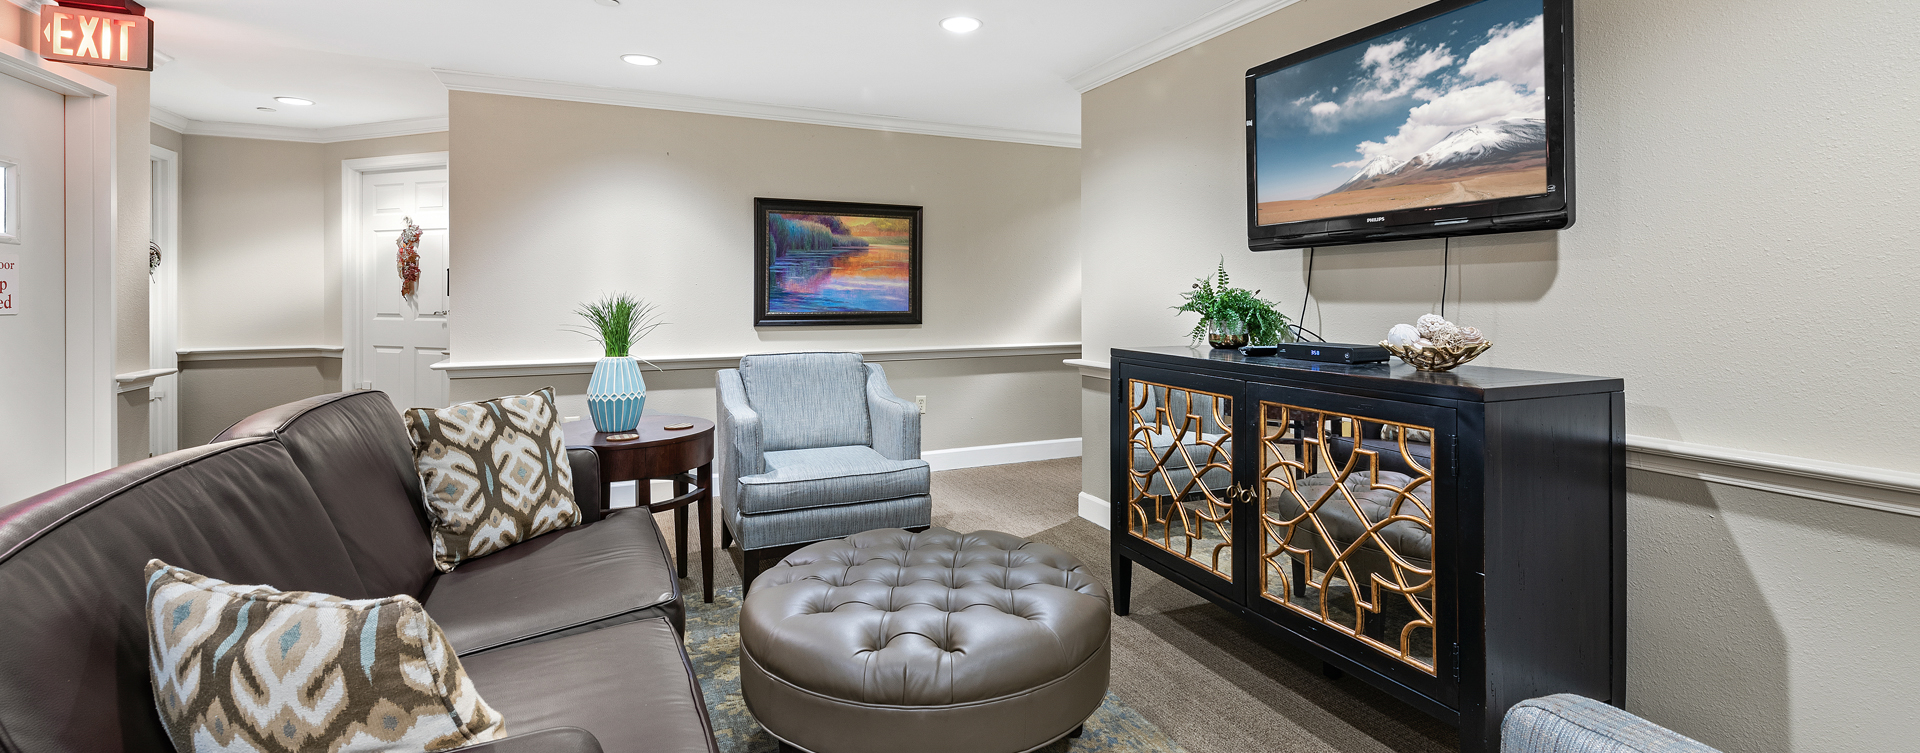 Residents can enjoy furniture covered in cozy fabrics in the Mary B's living room at Bickford of Bexley